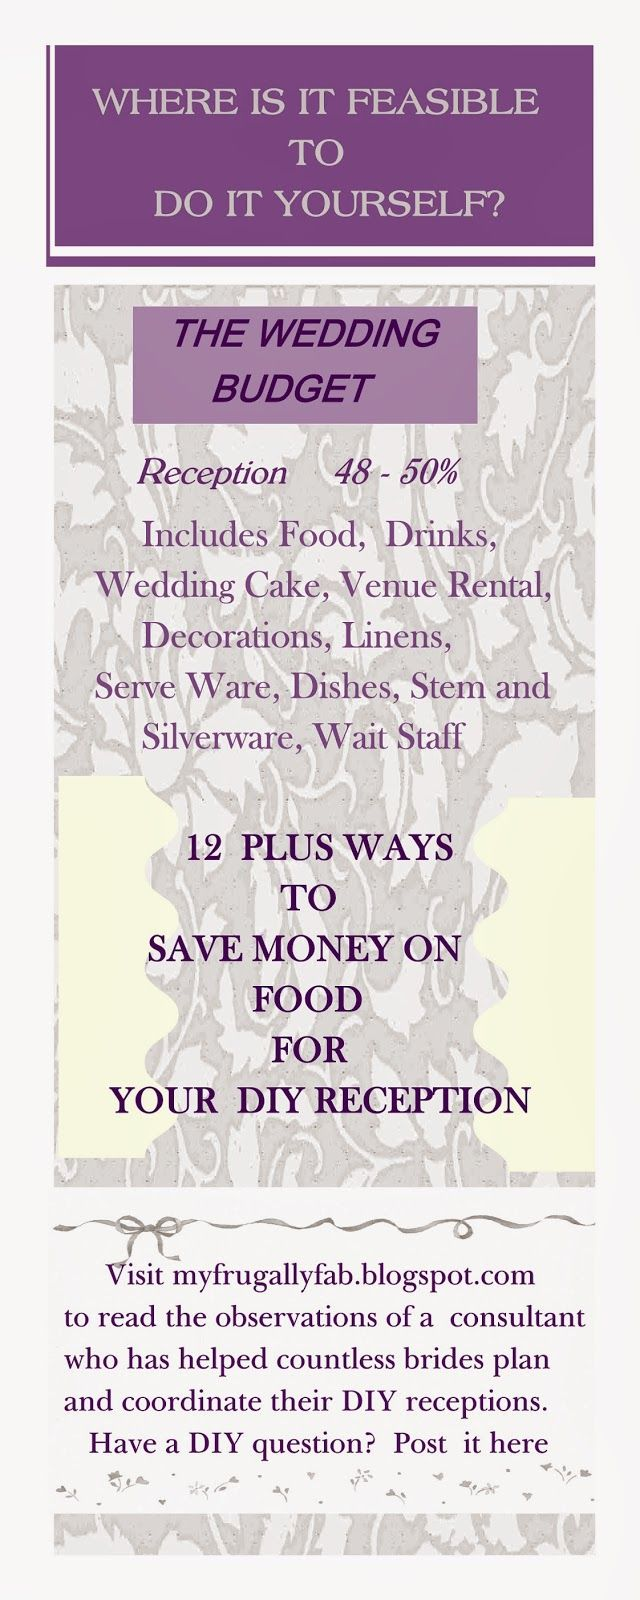 Frugally fabulous wedding receptions 12 plus ways to save money on frugally fabulous wedding receptions 12 plus ways to save money on food for a diy solutioingenieria Gallery